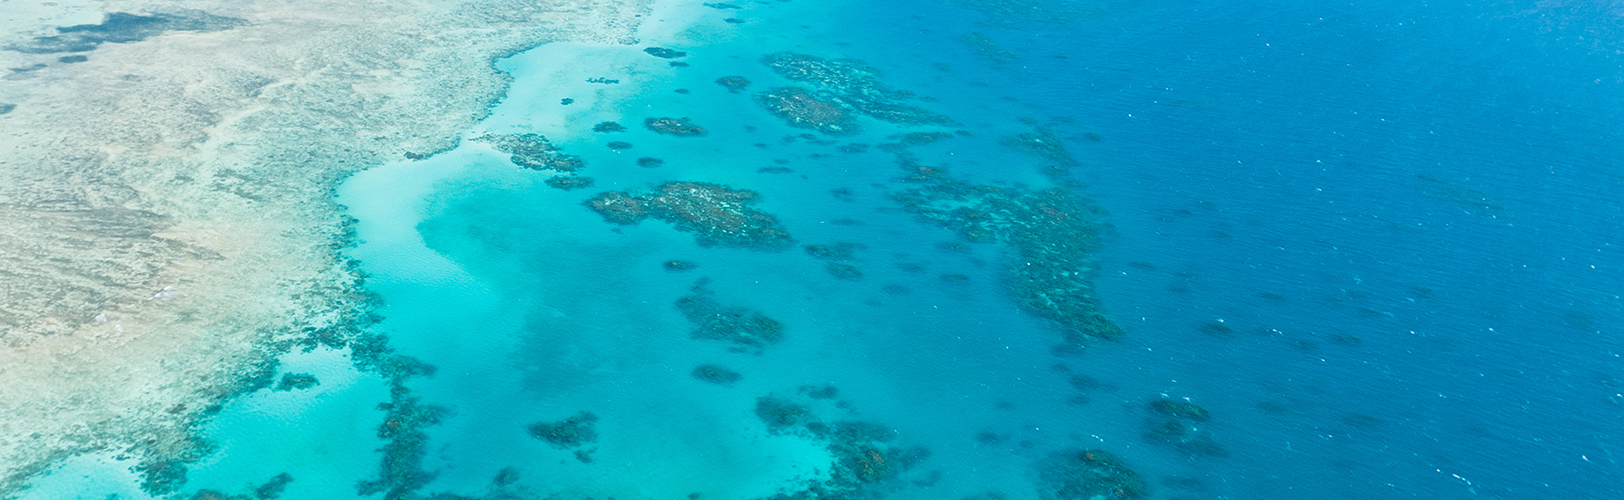 PETITION: Don't use public funds to wreck the Reef and climate.